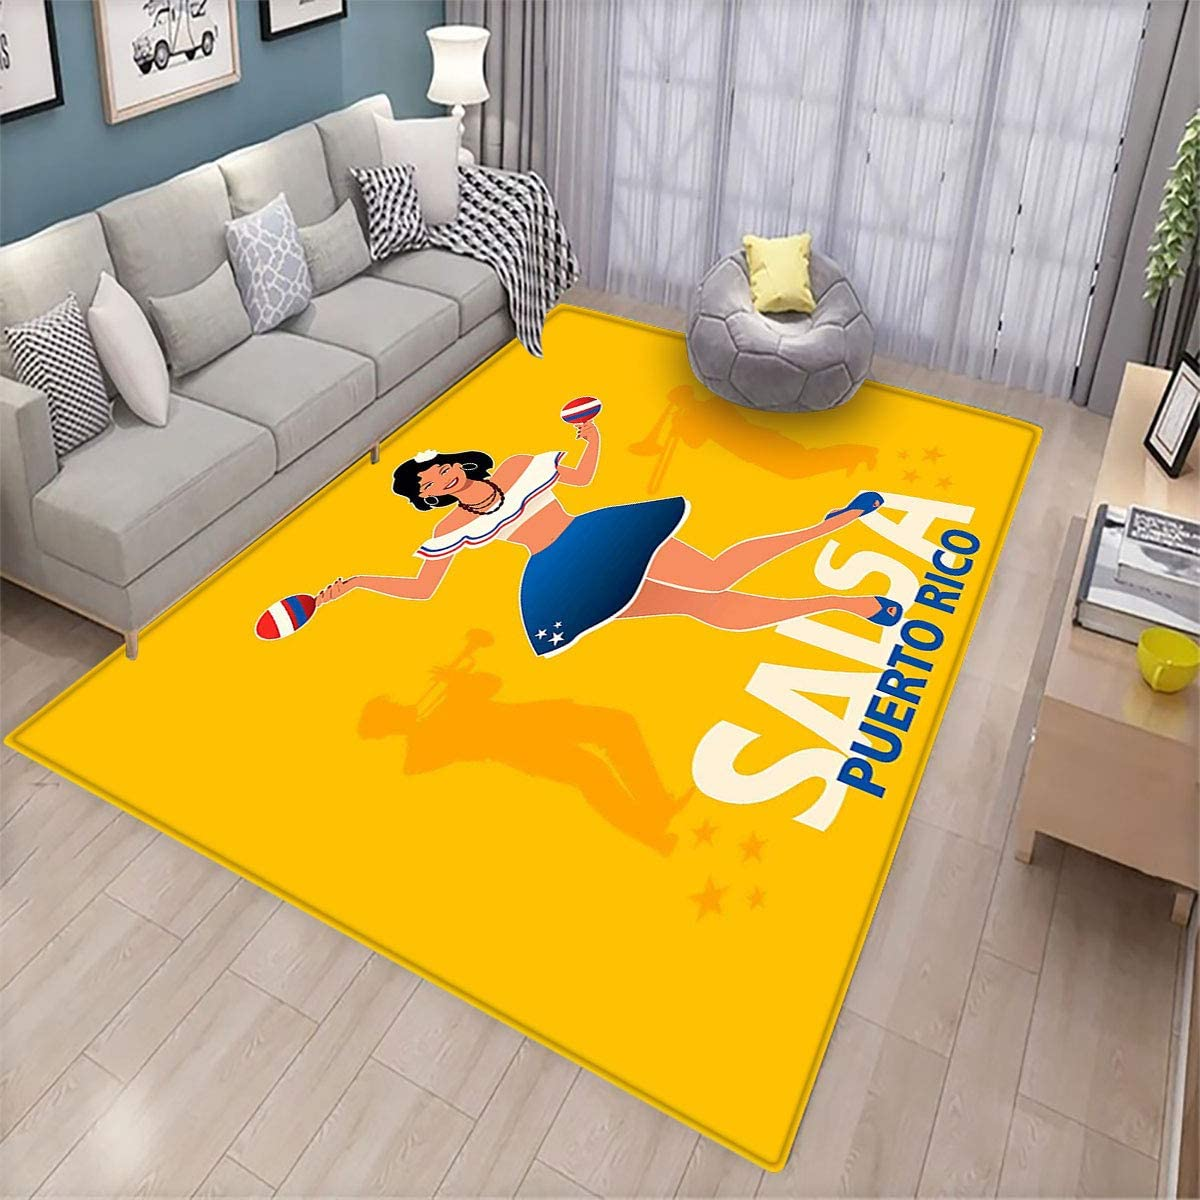 Puerto Rico,Indoor Floor mat,Salsa Dancing Girl with Maracas Trombonist and Trumpeter Silhouette on Backdrop Multicolor -6'x7',Can be Used for Floor Decoration